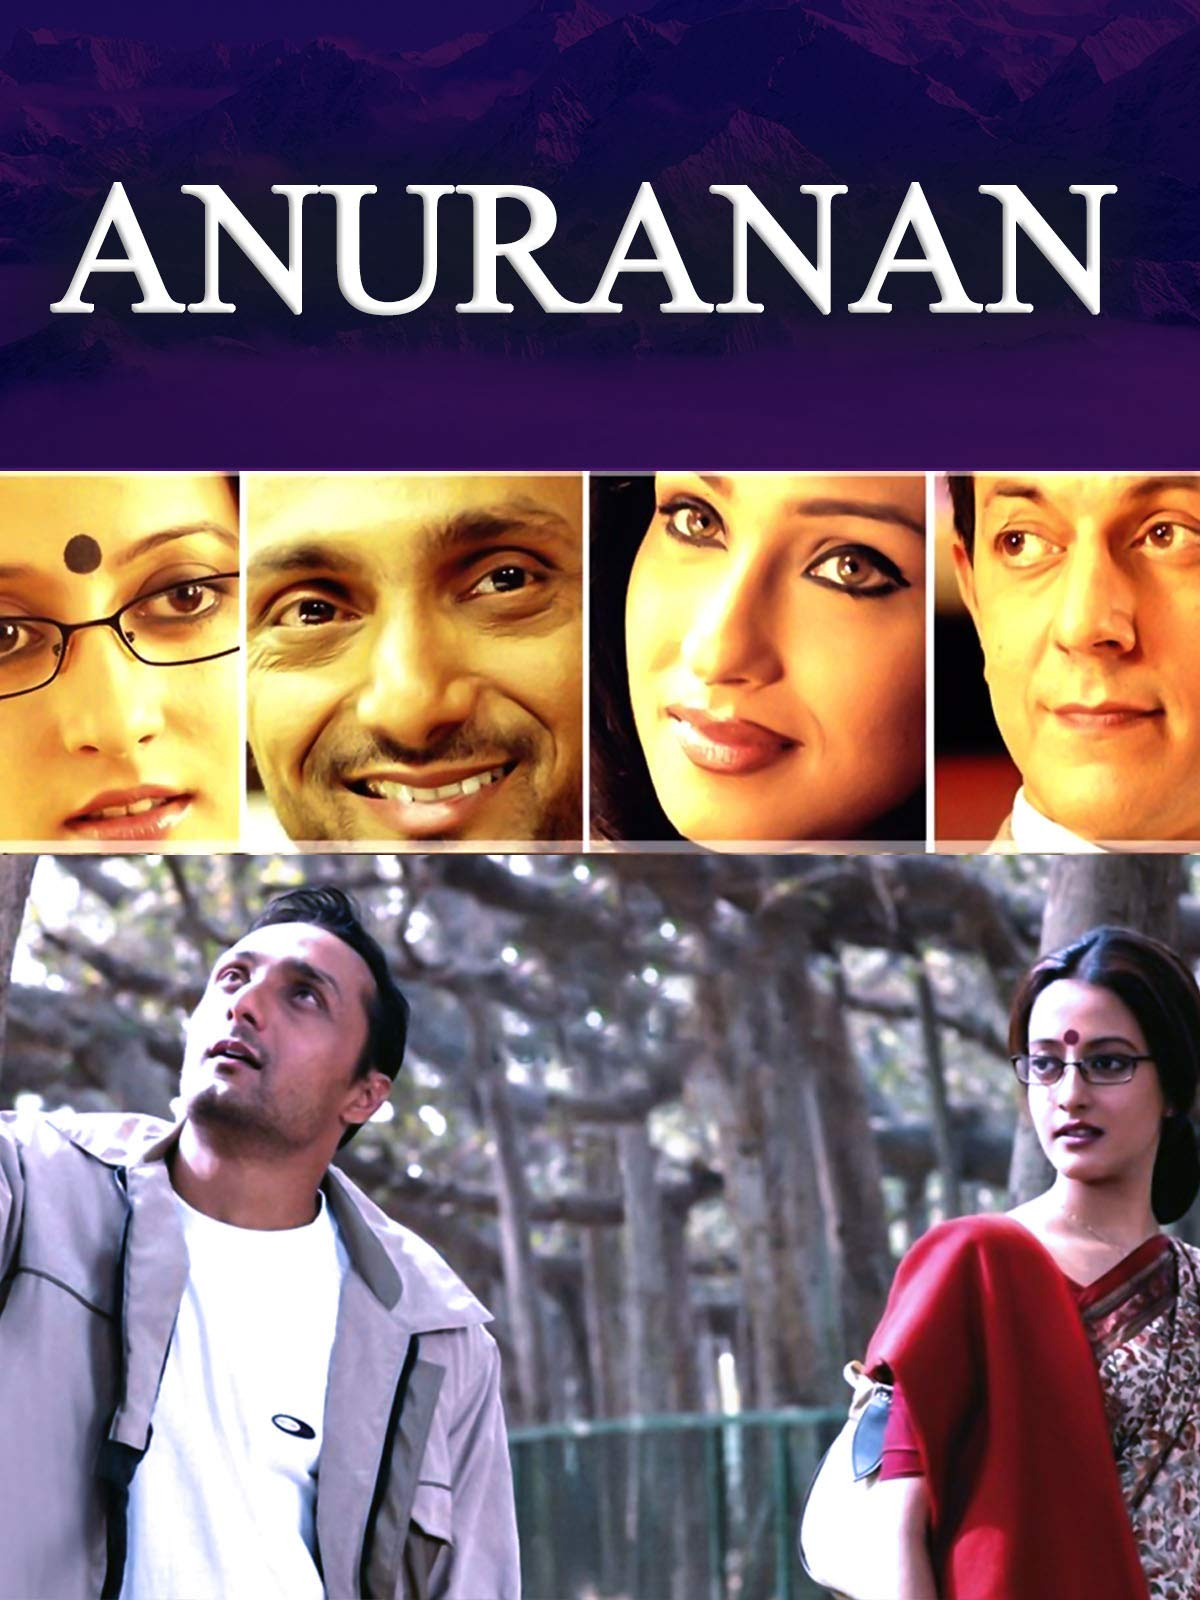 Anuranan (Hindi Dubbed)